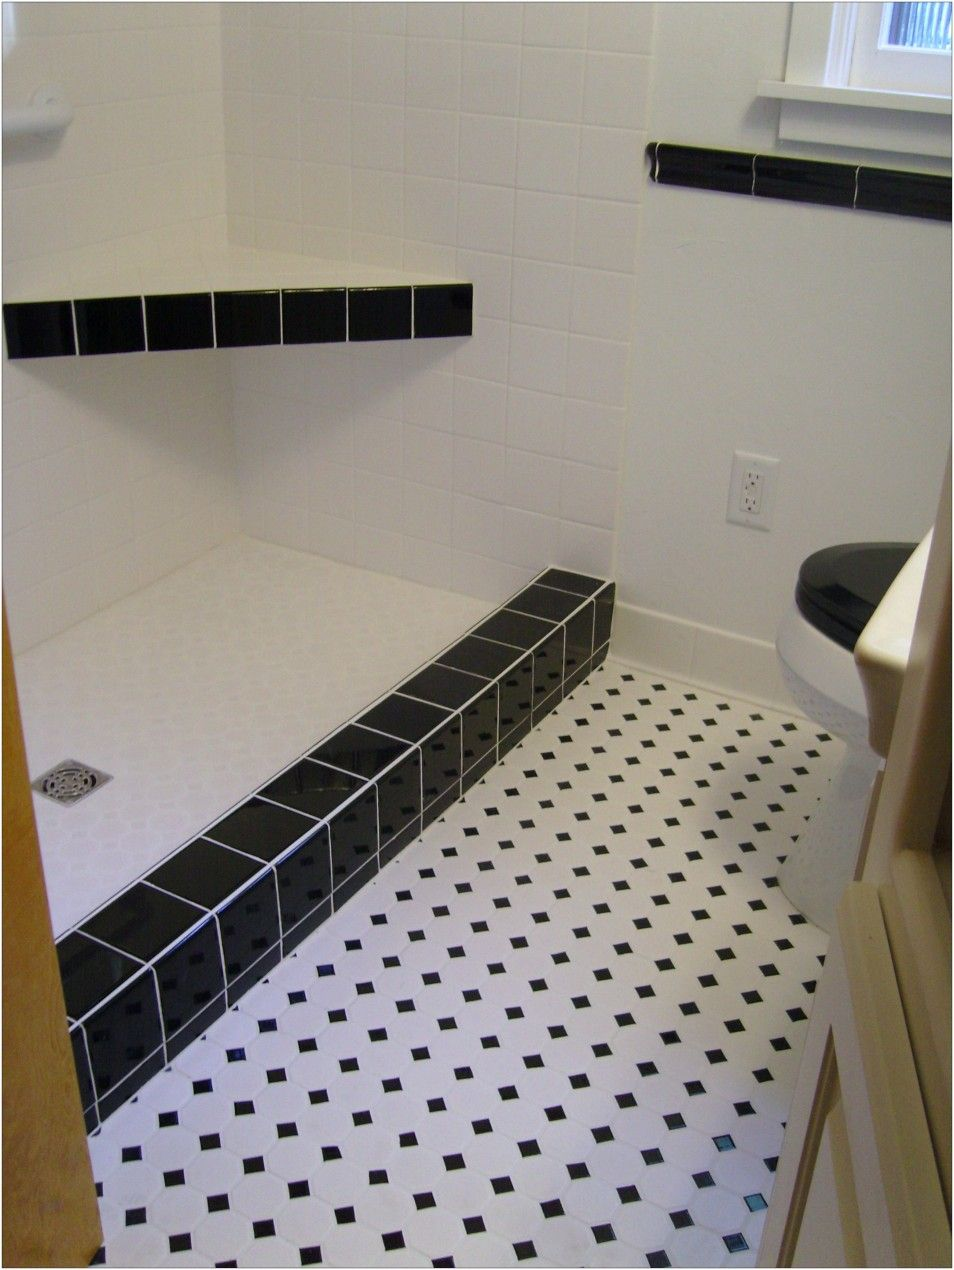 Bathroom tile patterns with a simple pattern tiling bathroom floor bathroom tile patterns with a simple pattern tiling bathroom floor black and white bathroom tile ideas doublecrazyfo Choice Image